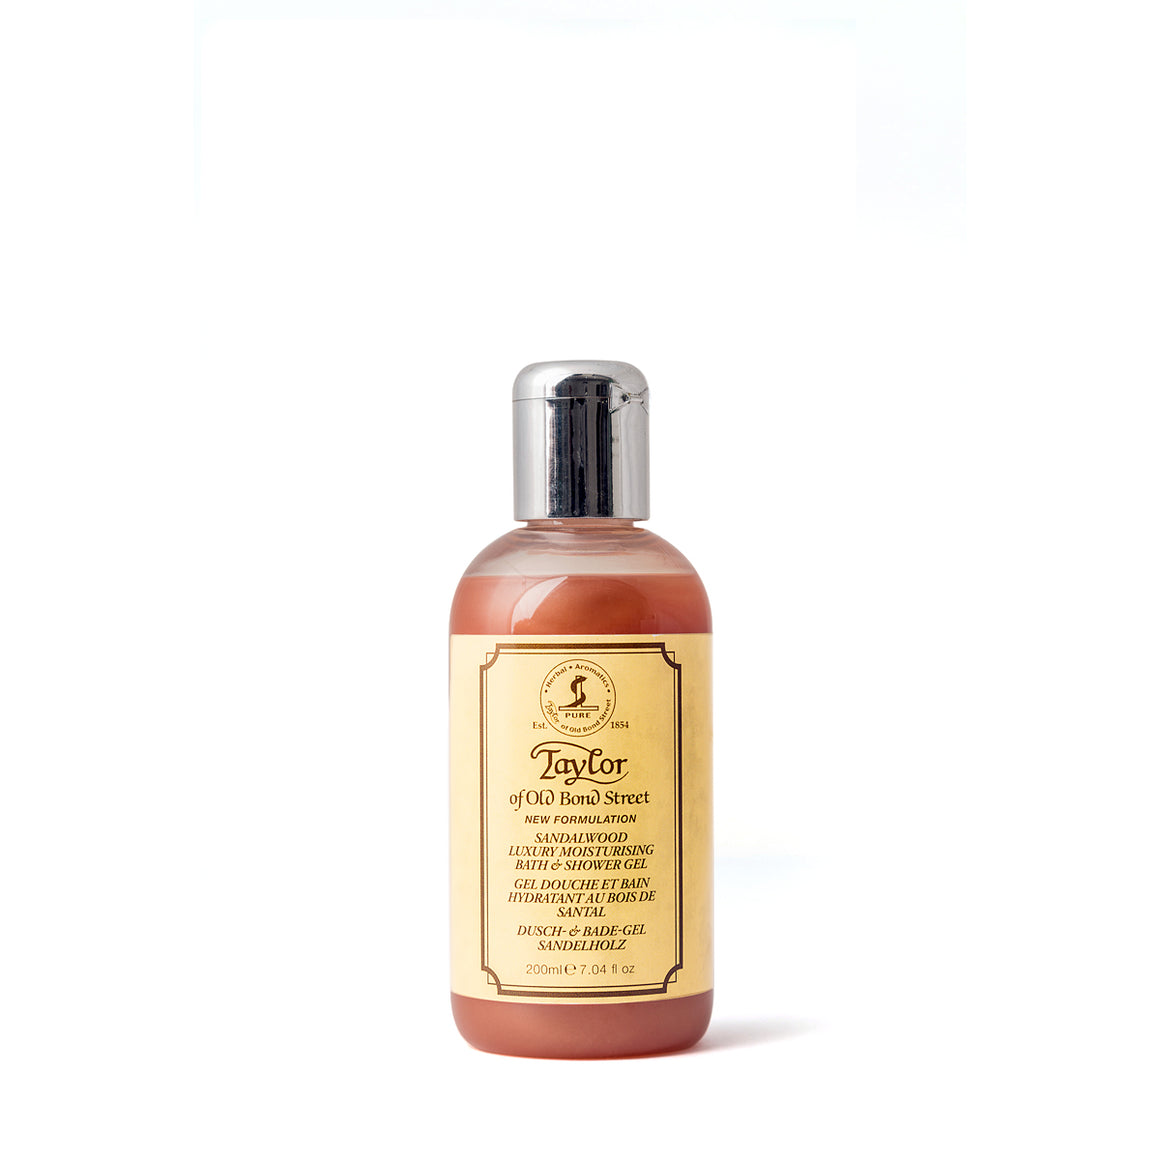 Taylor of Old Bond Street Sandalwood Bath and Shower Gel 200ml